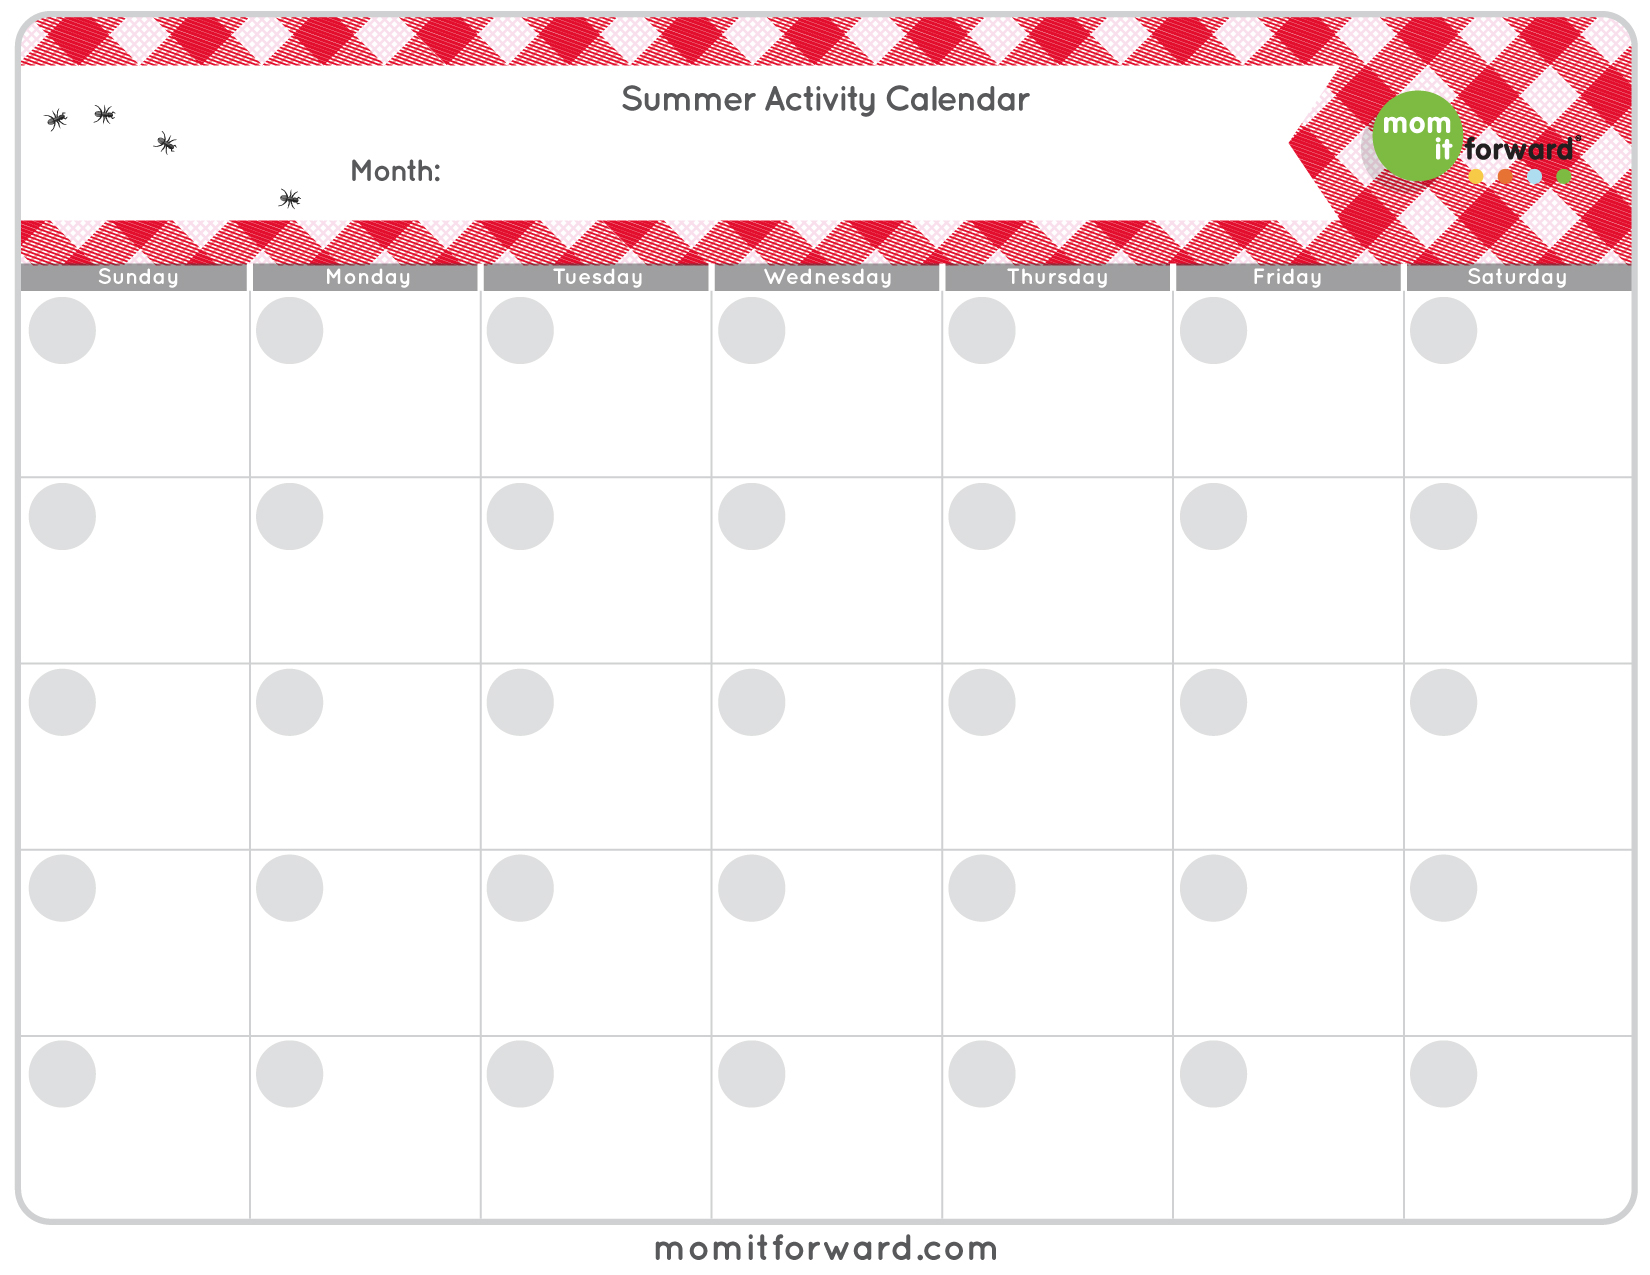 Summer Activity Calendar Printable